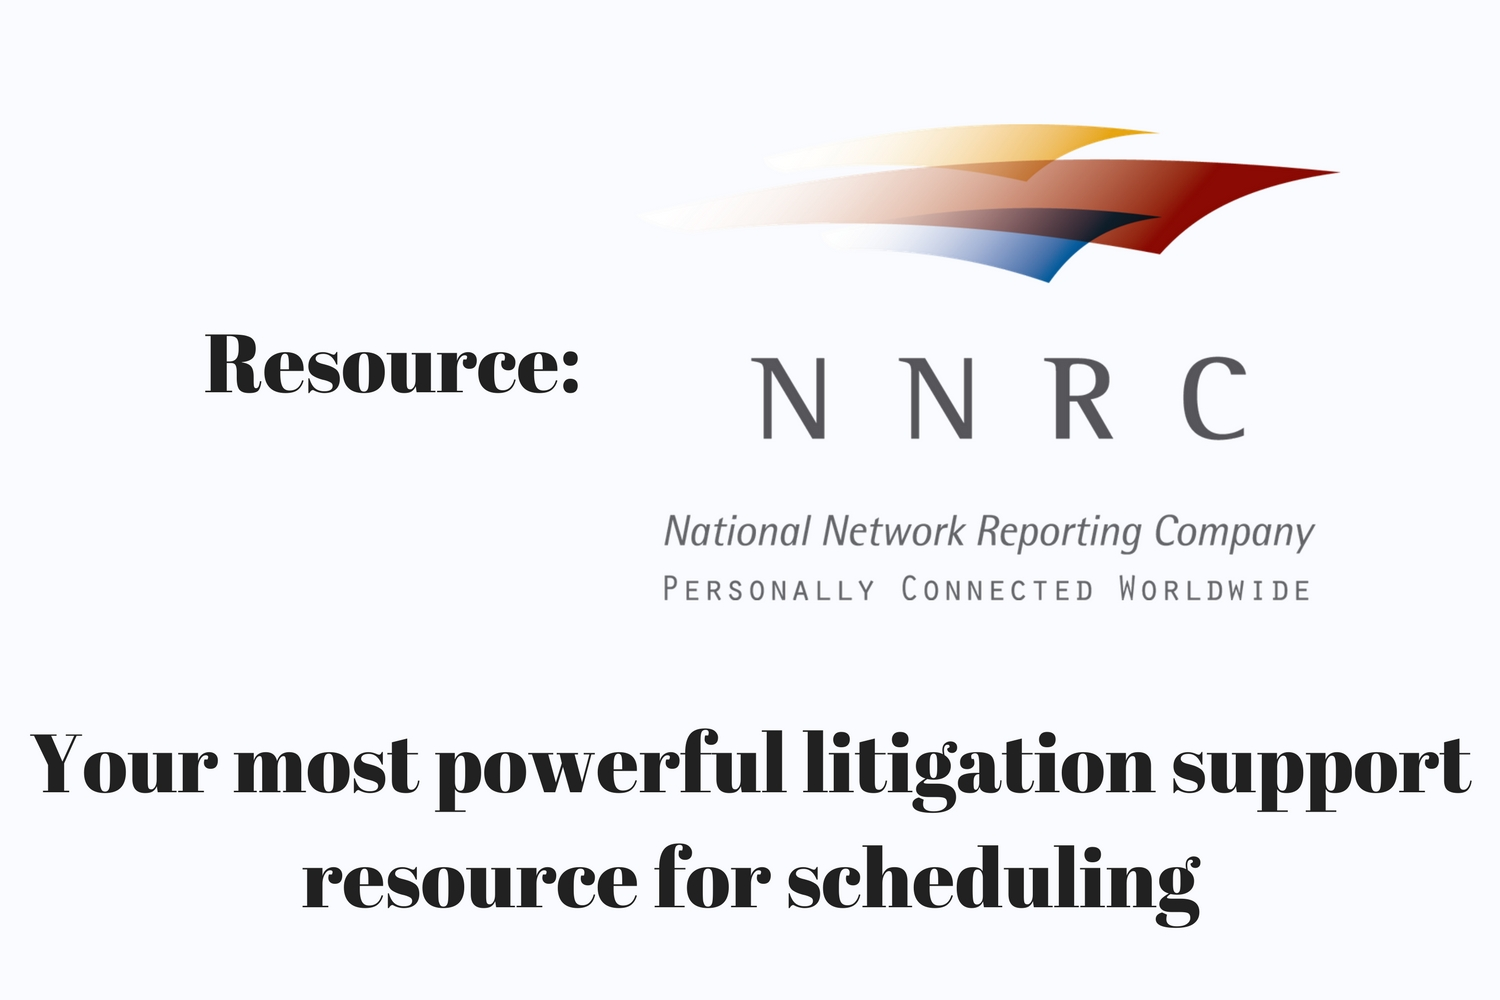 Resource: NNRC, the National Network Reporting Company